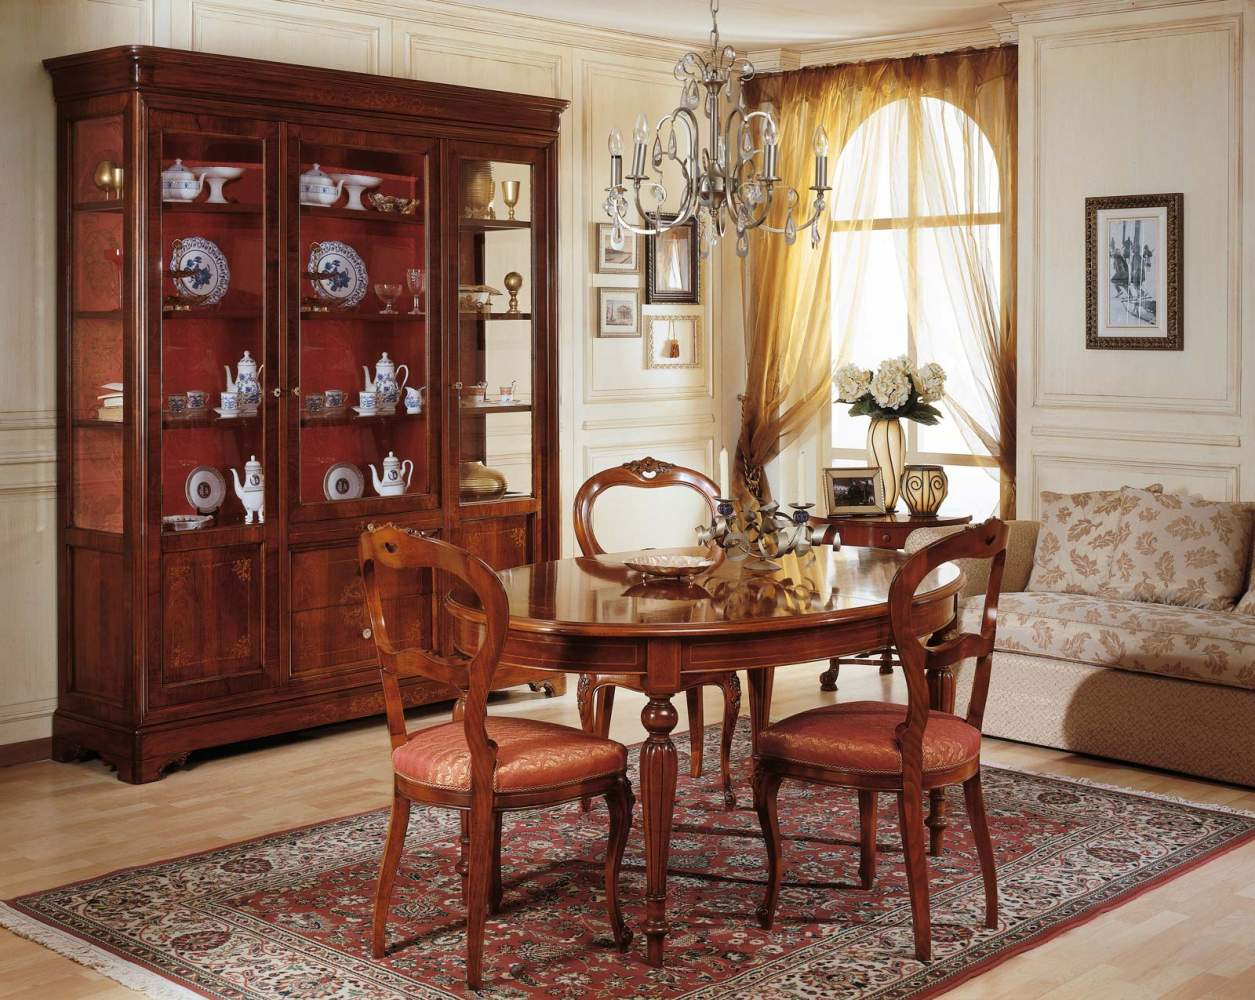 Dining room french with oval table